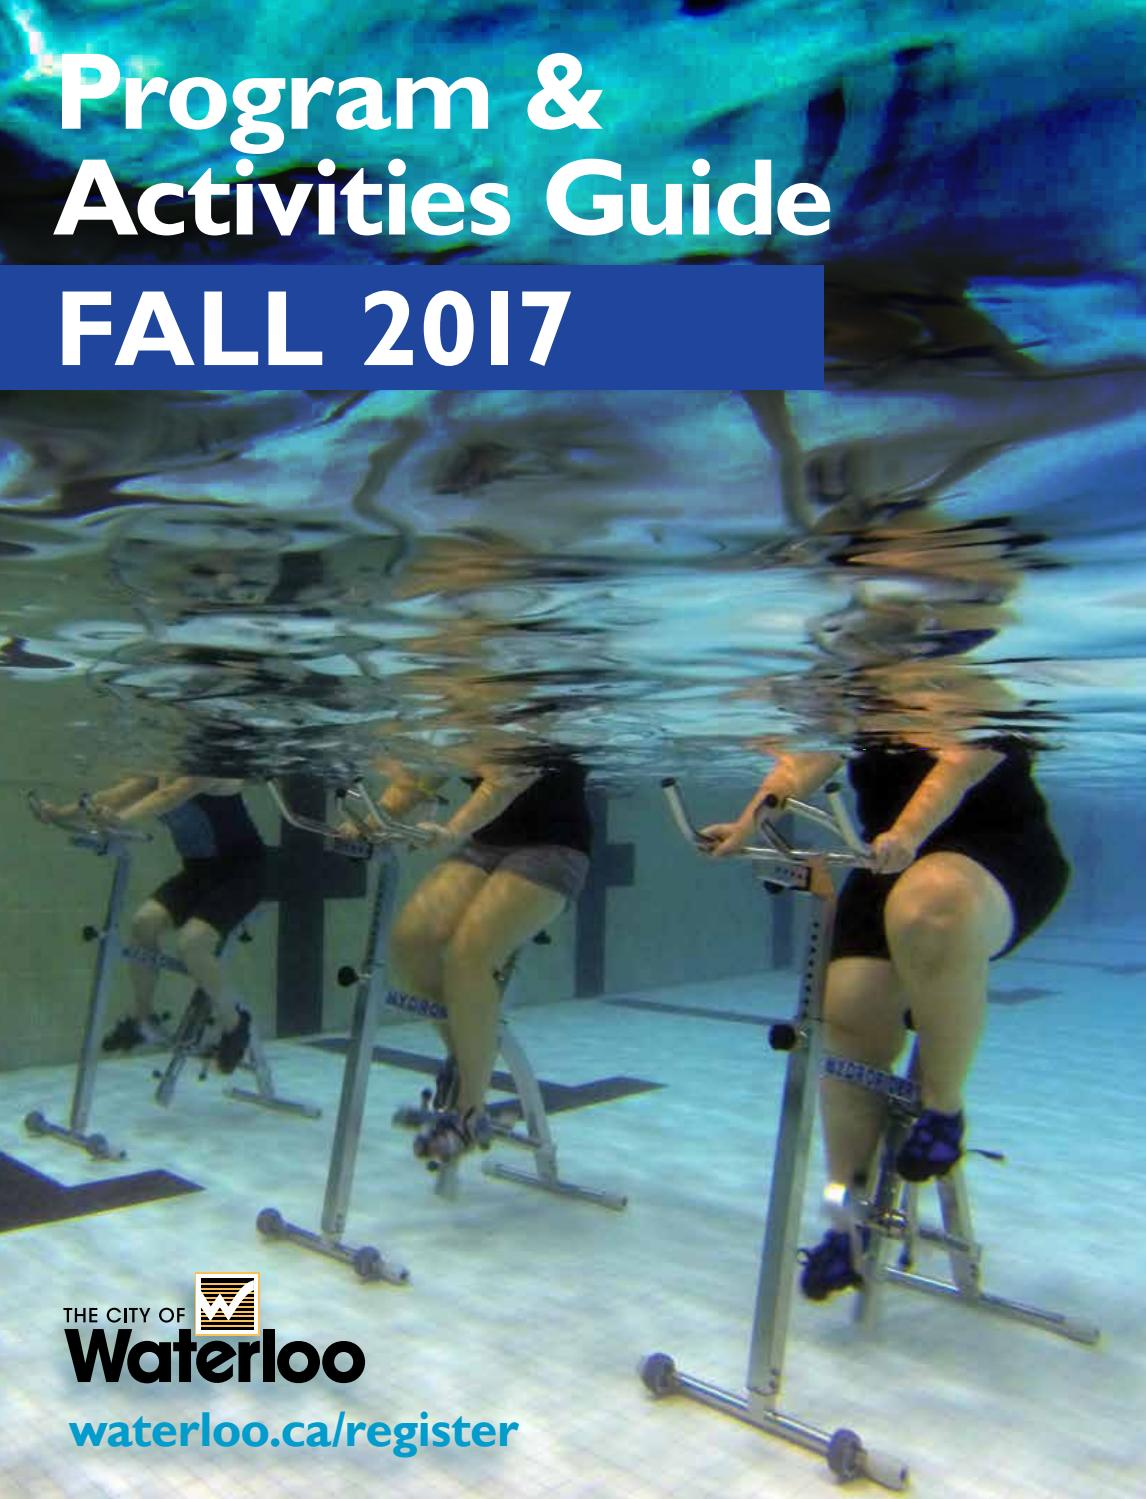 City of Waterloo Program & Activities Guide - Fall 2017 by